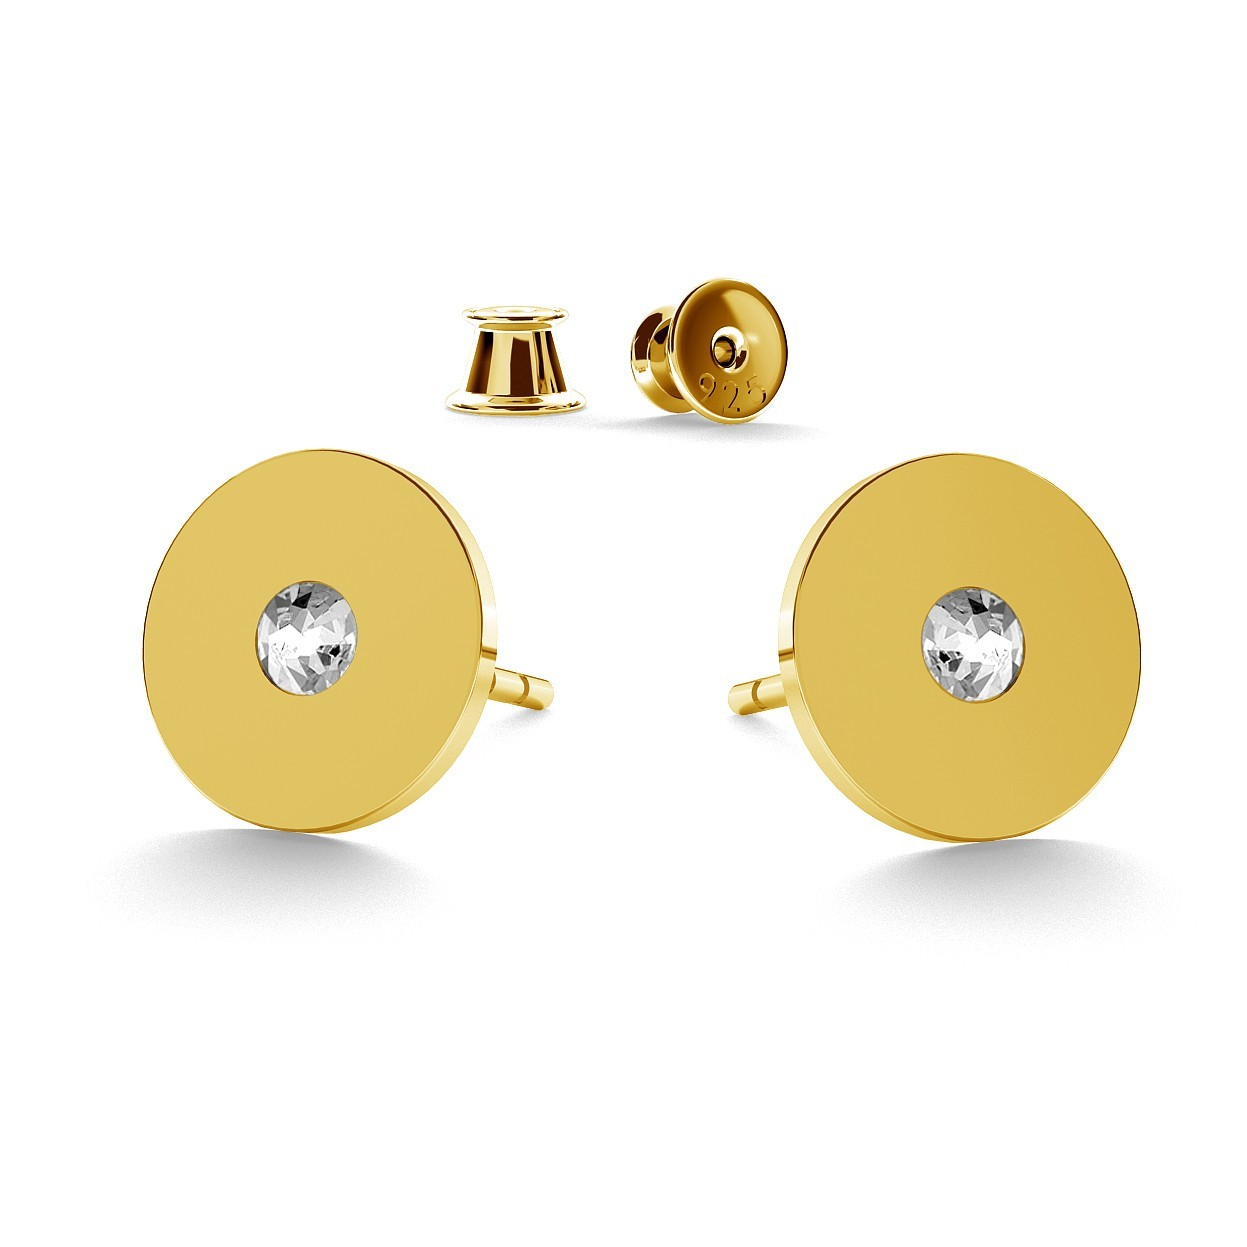 ROUND POST EARRINGS WITH SWAROVSKI CRYSTALS